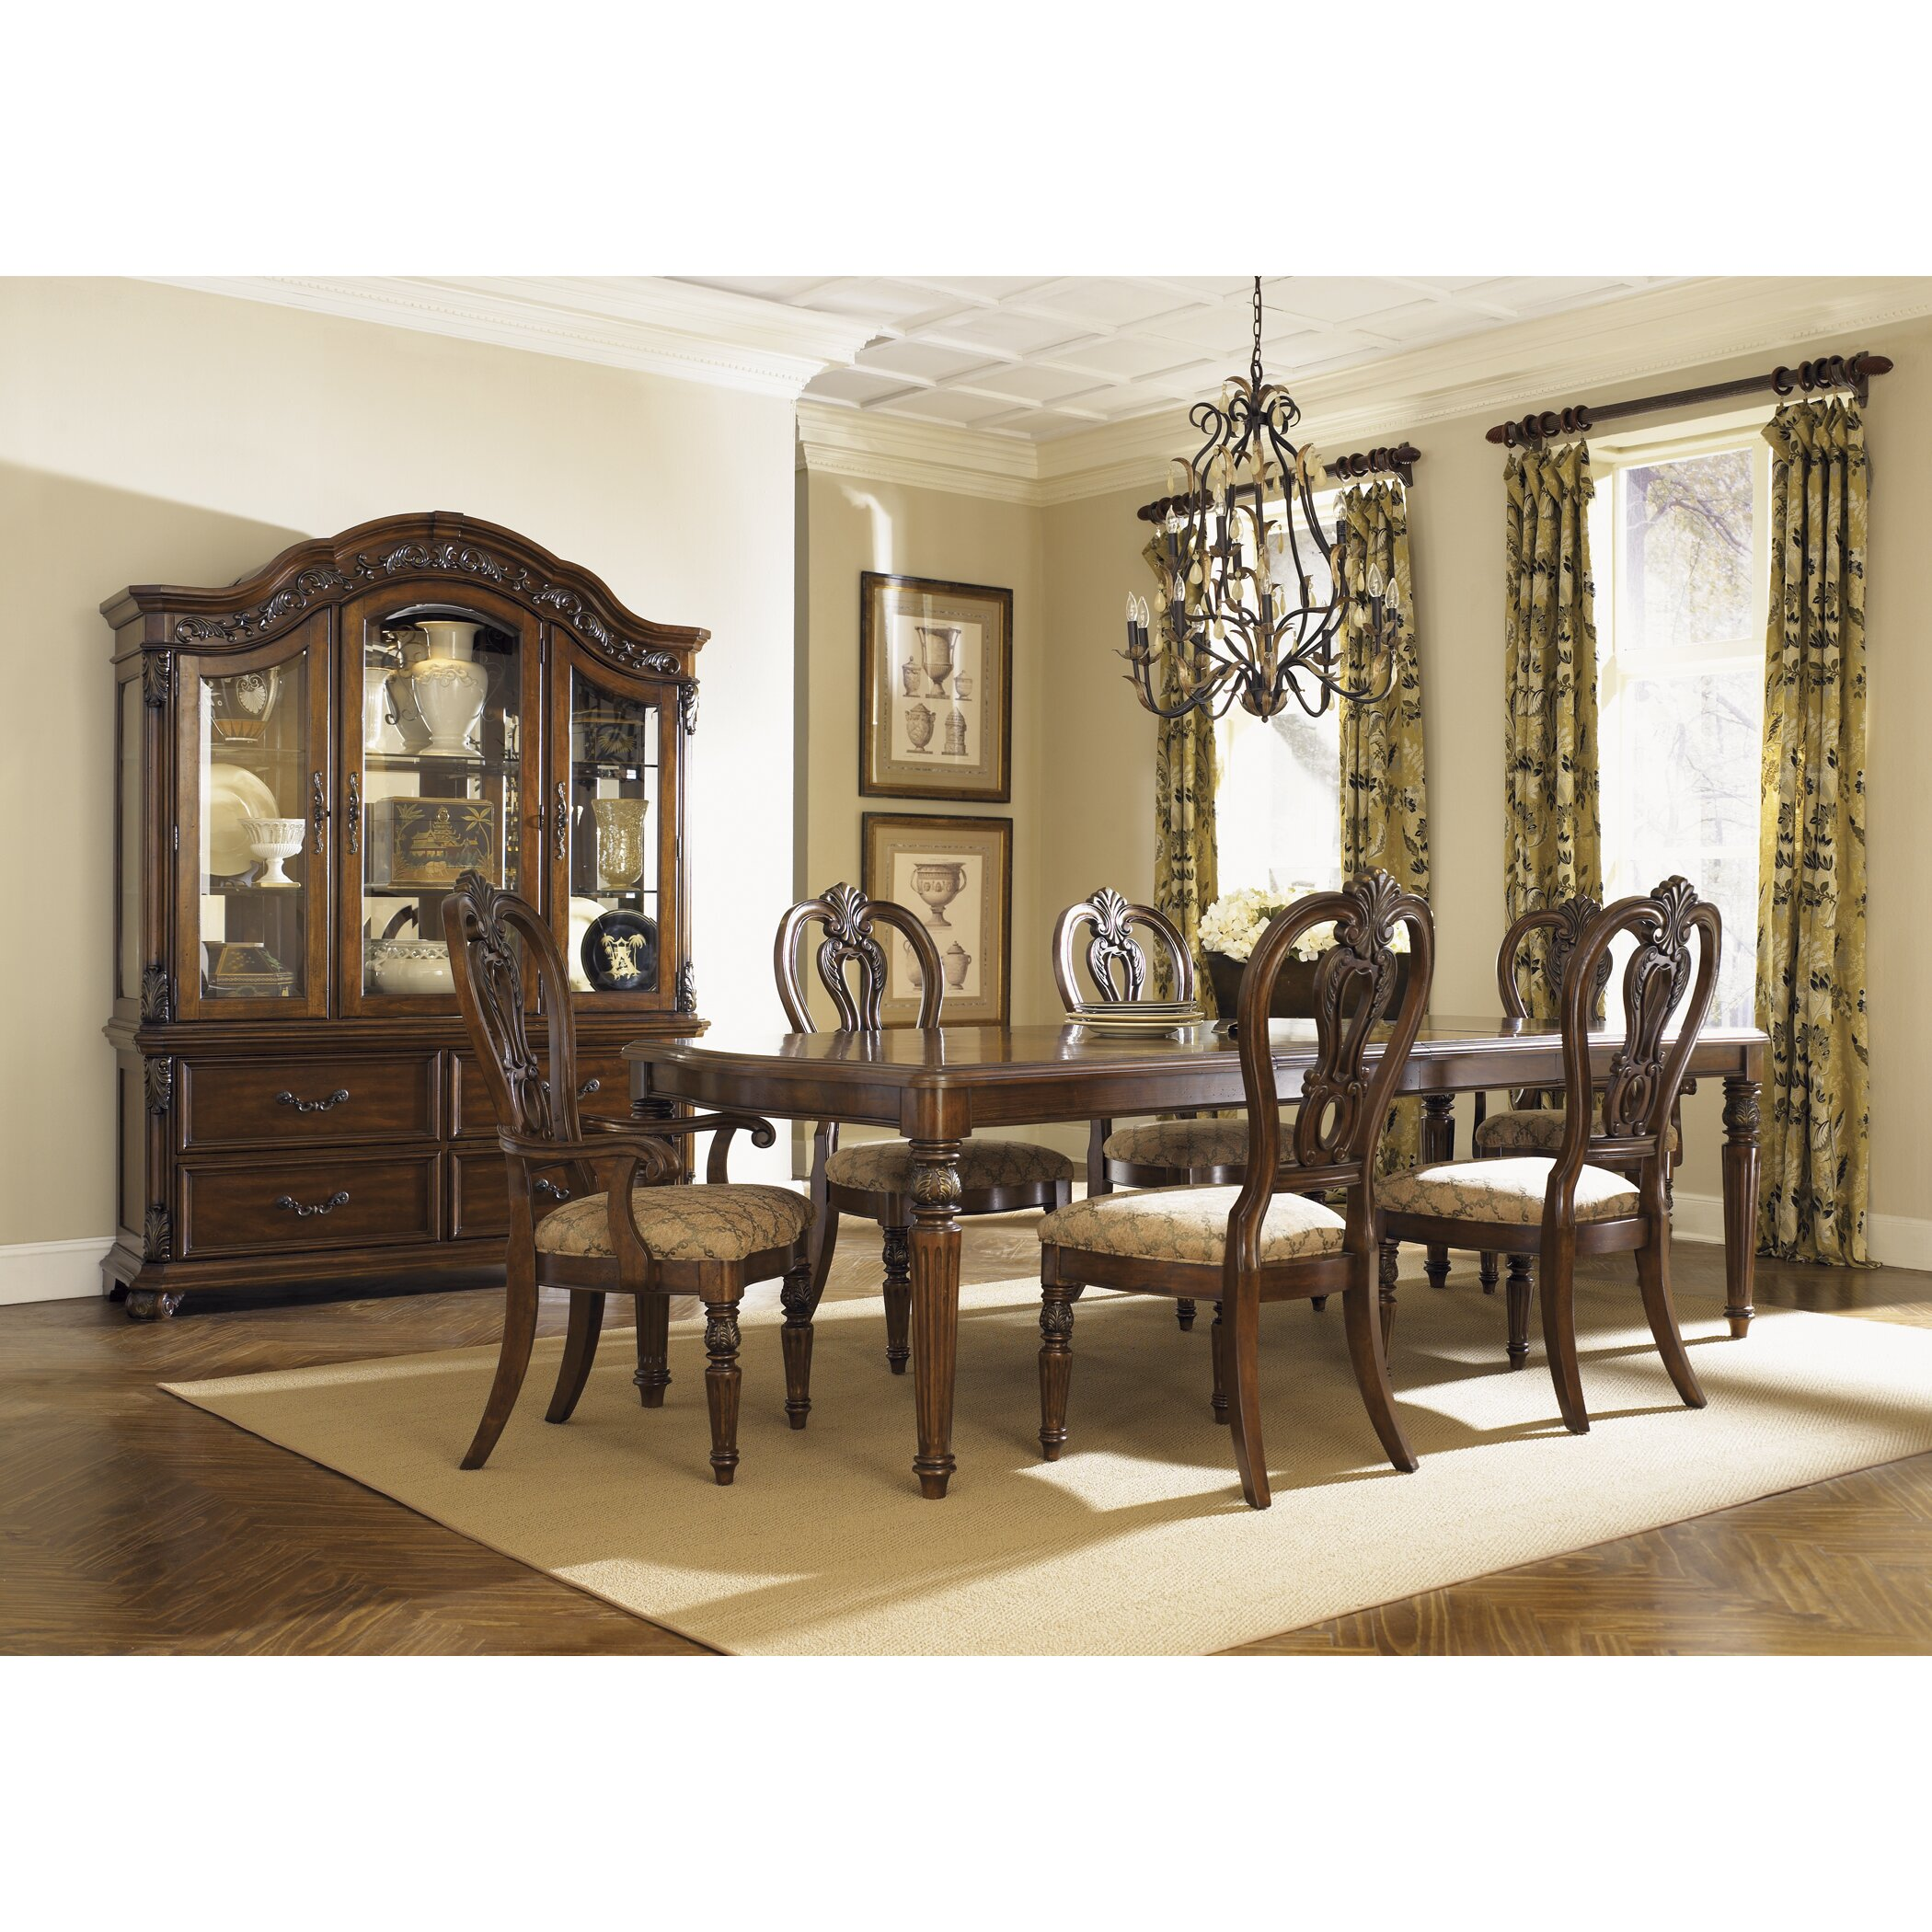 Brussels Traditional Dining Room Set 7 Piece Set: Astoria Grand Cavas 7 Piece Dining Set & Reviews